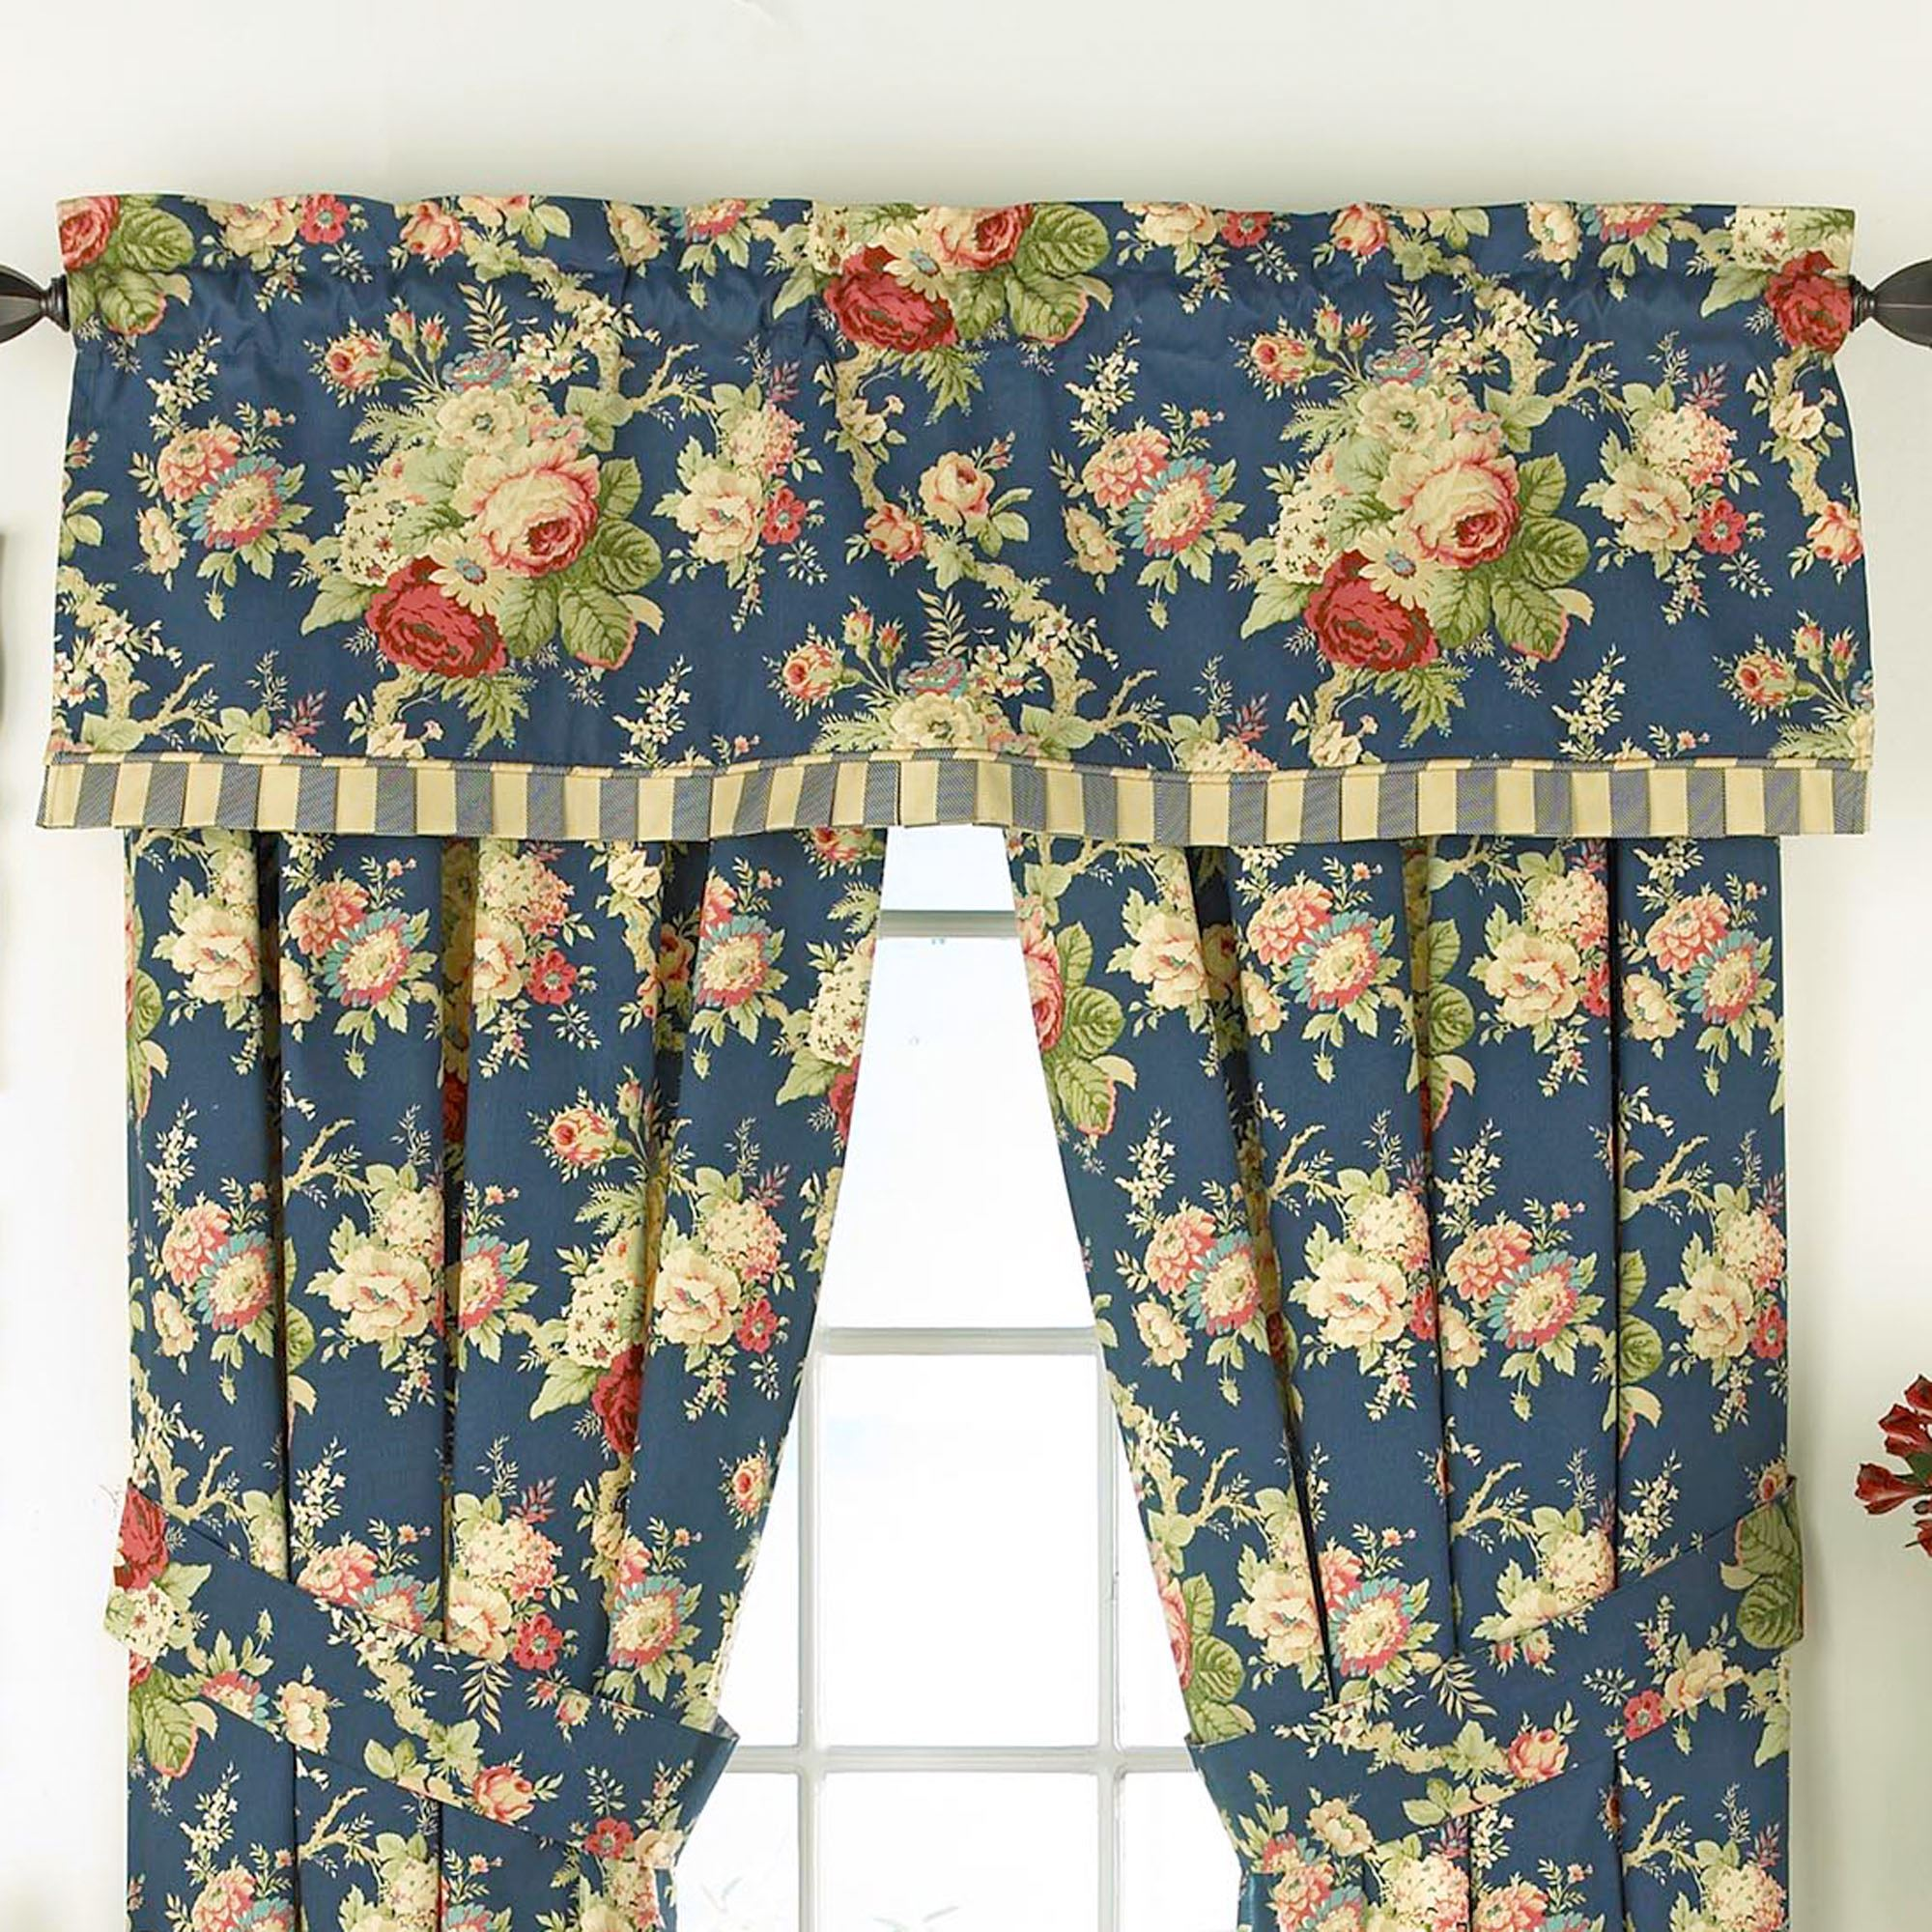 x set valances scalloped double norfolk p quilt rose cream floral valance by waverly